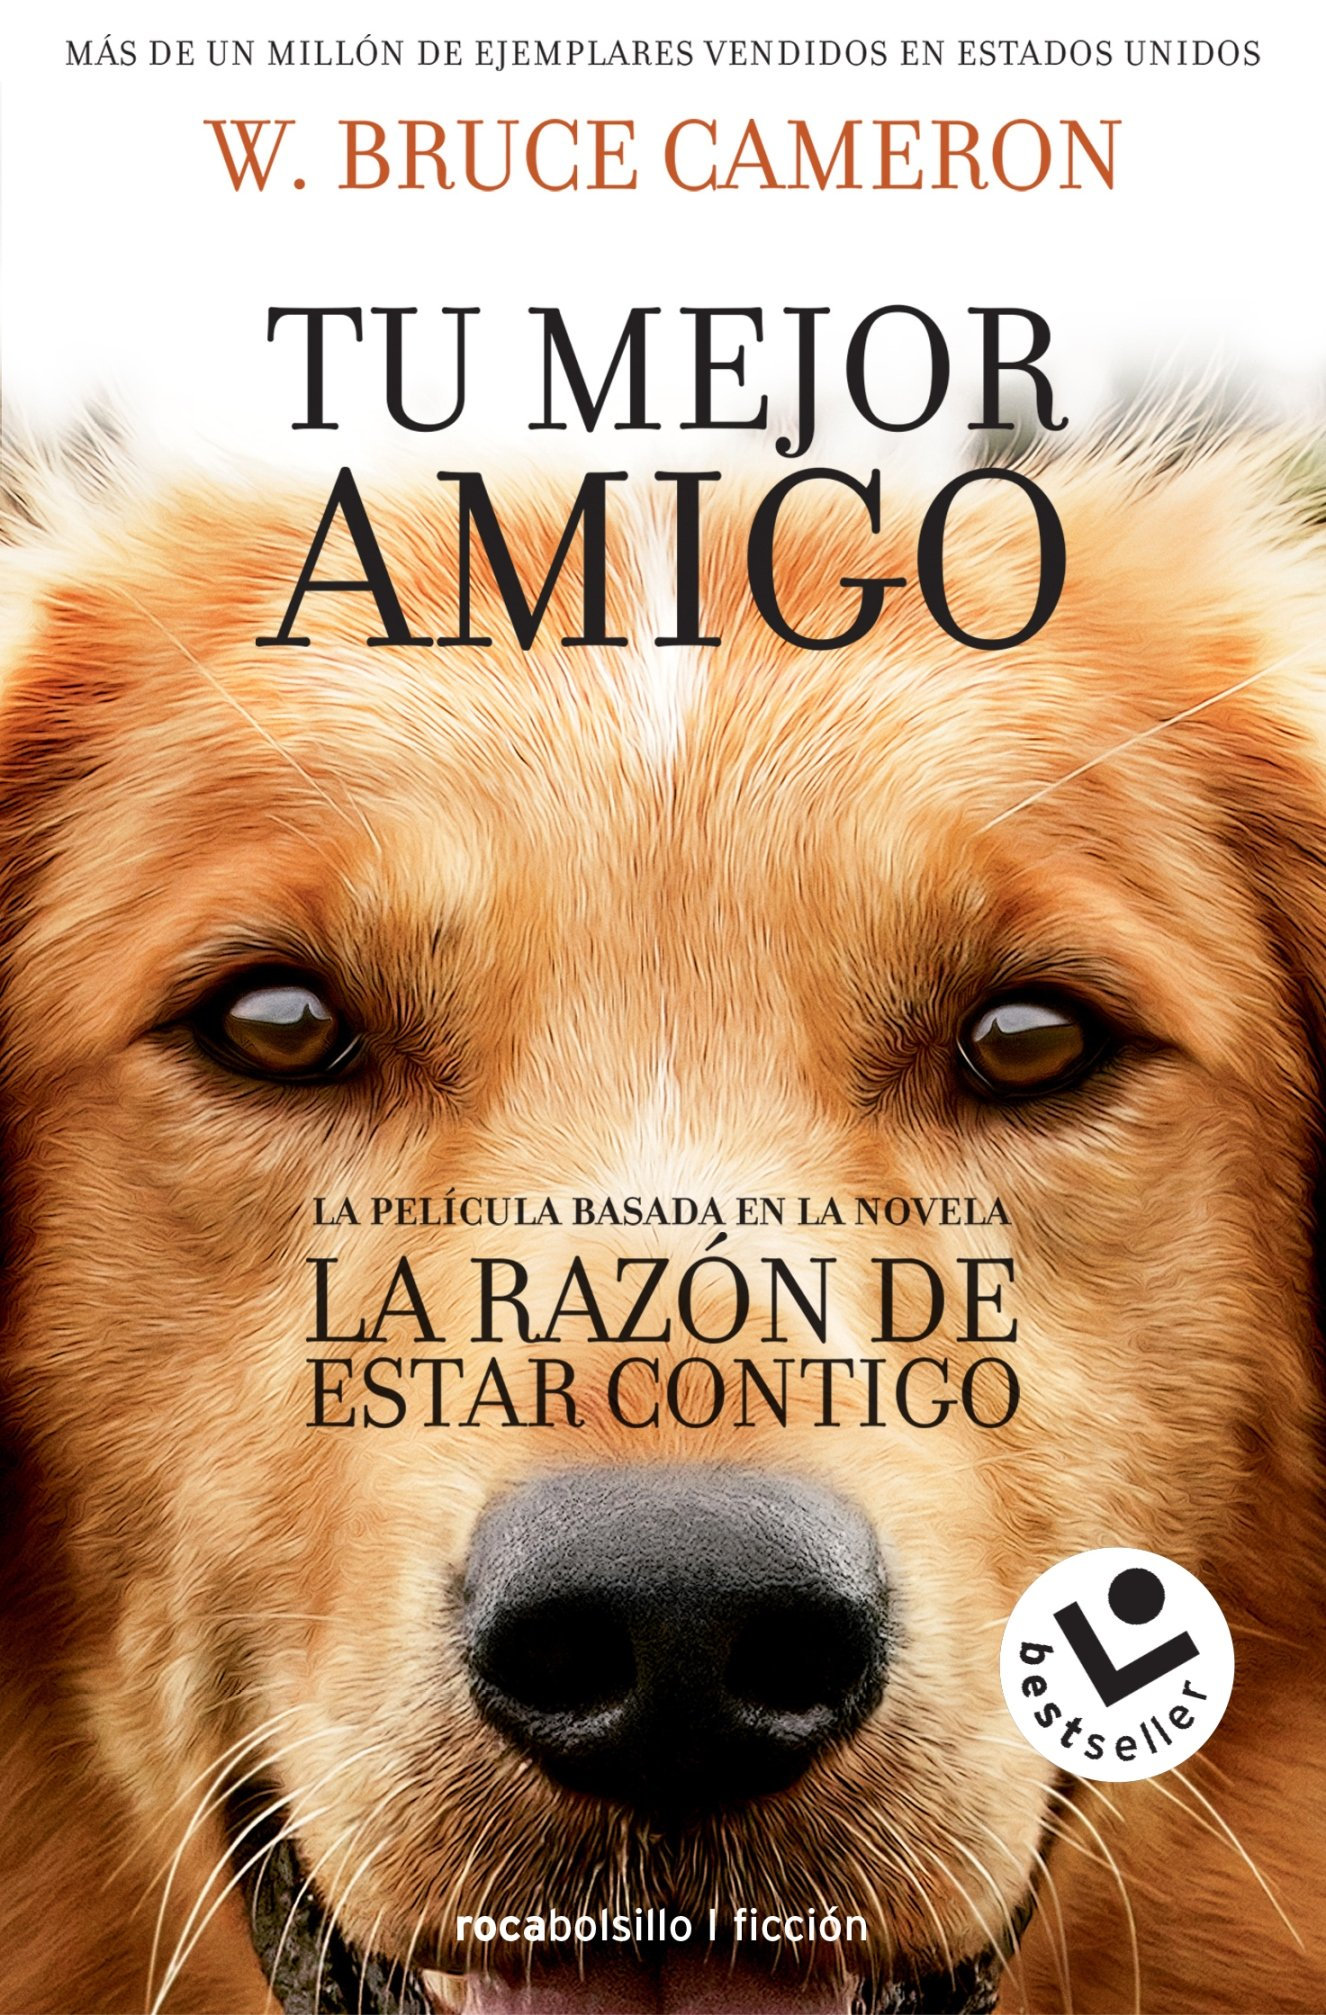 La razon de estar contigo (Spanish Edition): W. Bruce Cameron: 9788416240920: Amazon.com: Books